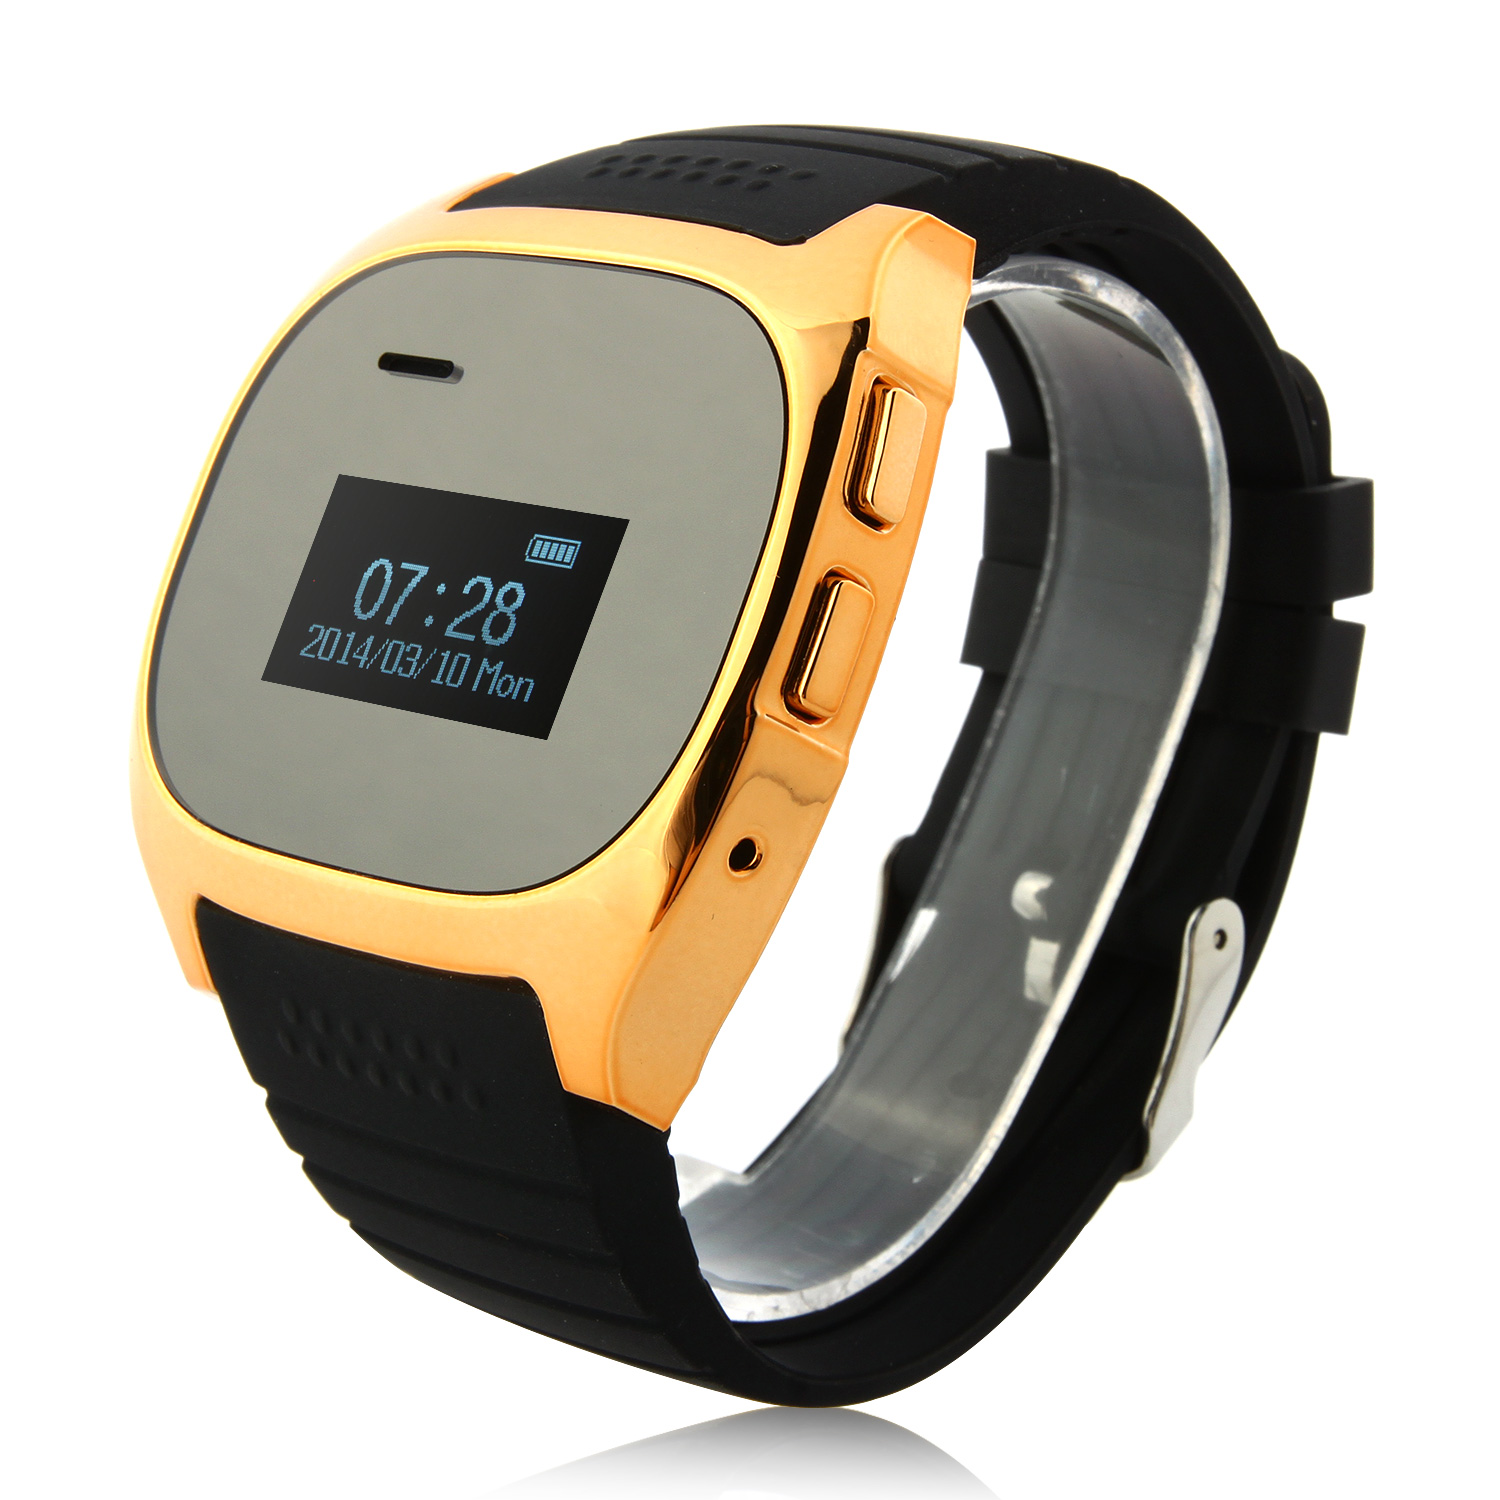 RWATCH M18 Smart Bluetooth Watch OLED Screen with Mic for Android Devices